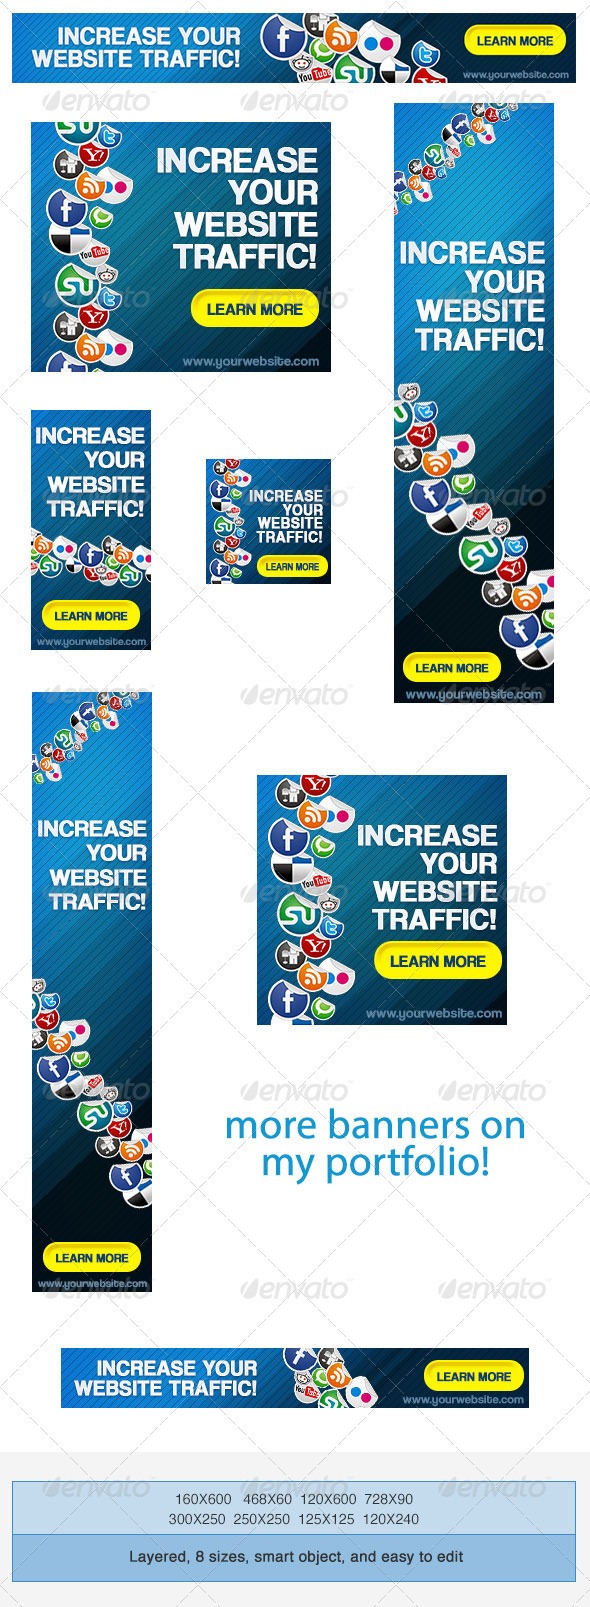 Social Media Network Banner Ad Template - Banners & Ads Web Elements